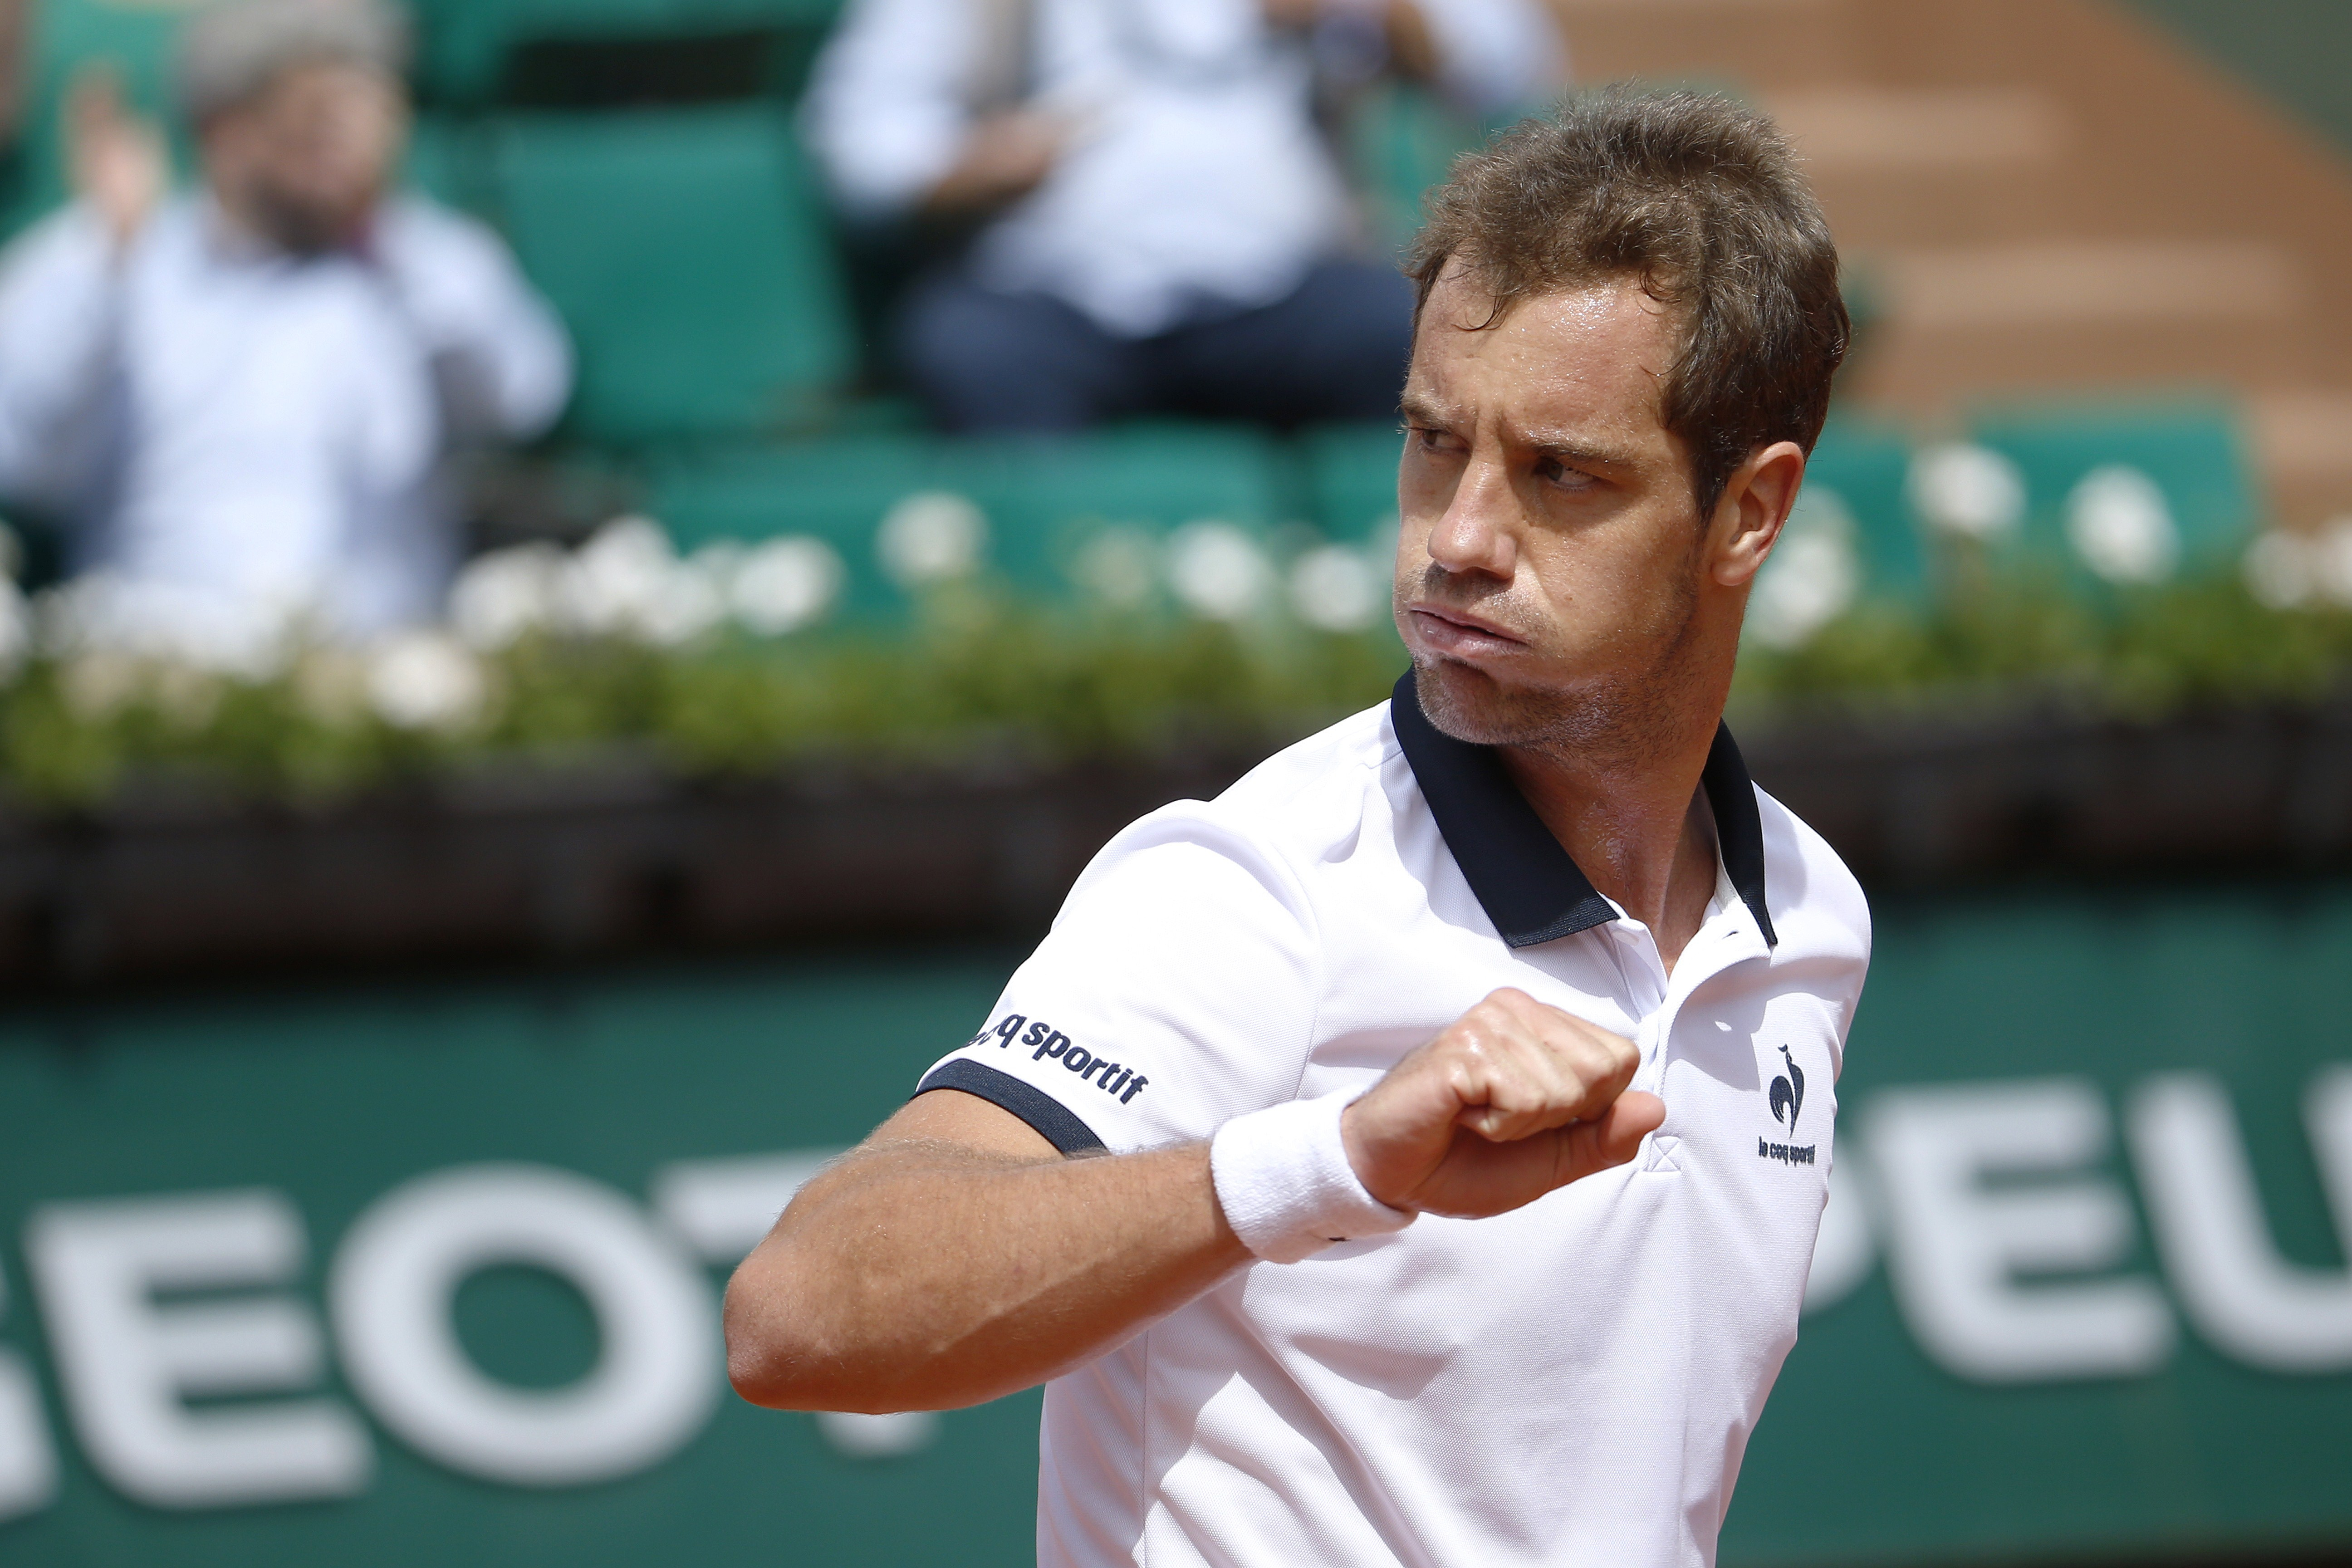 After their match was suspended for light on Thursday, Gasquet d. Berlocq.